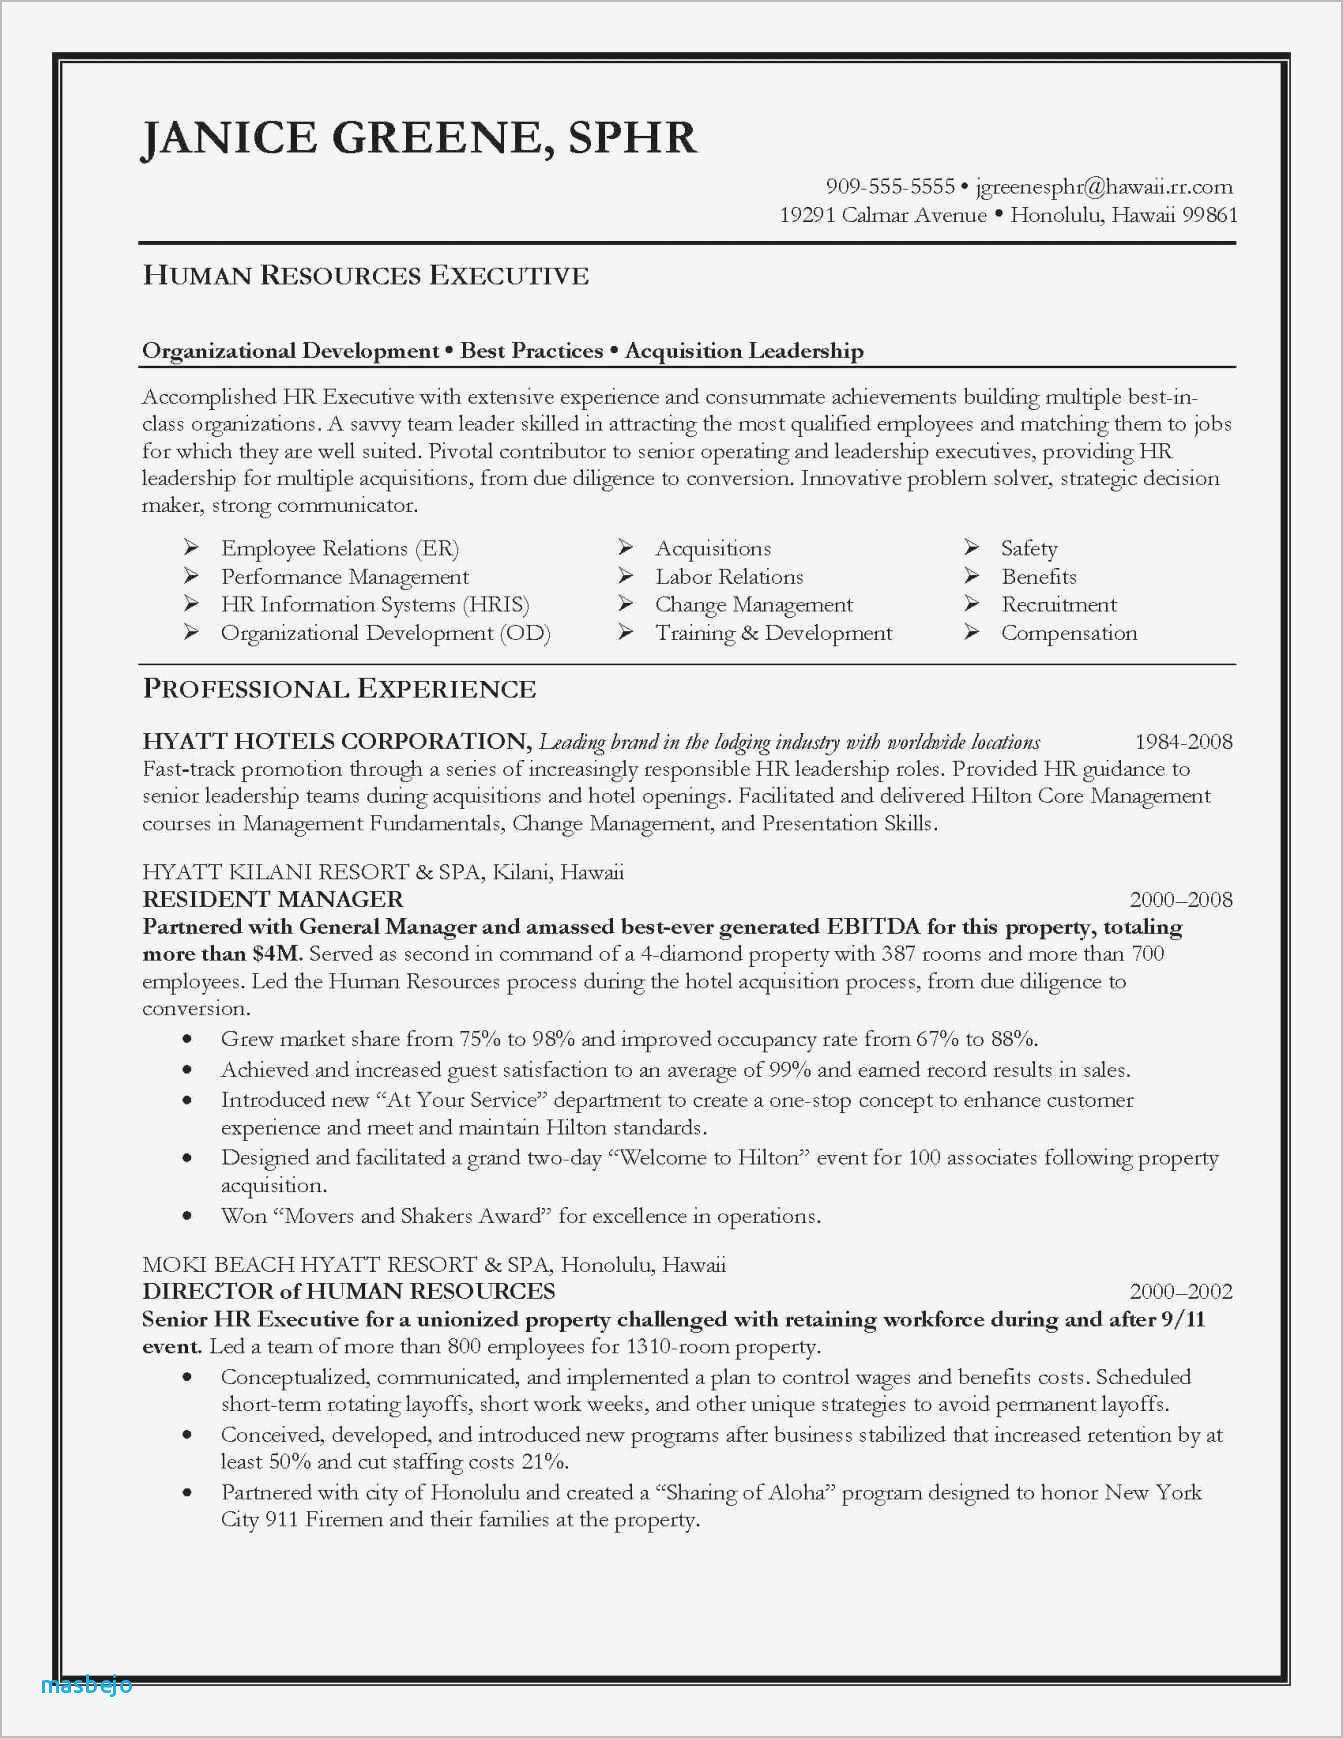 Landscaping Skills for Resume - Landscaping Resume Examples General Resume Sample Elegant